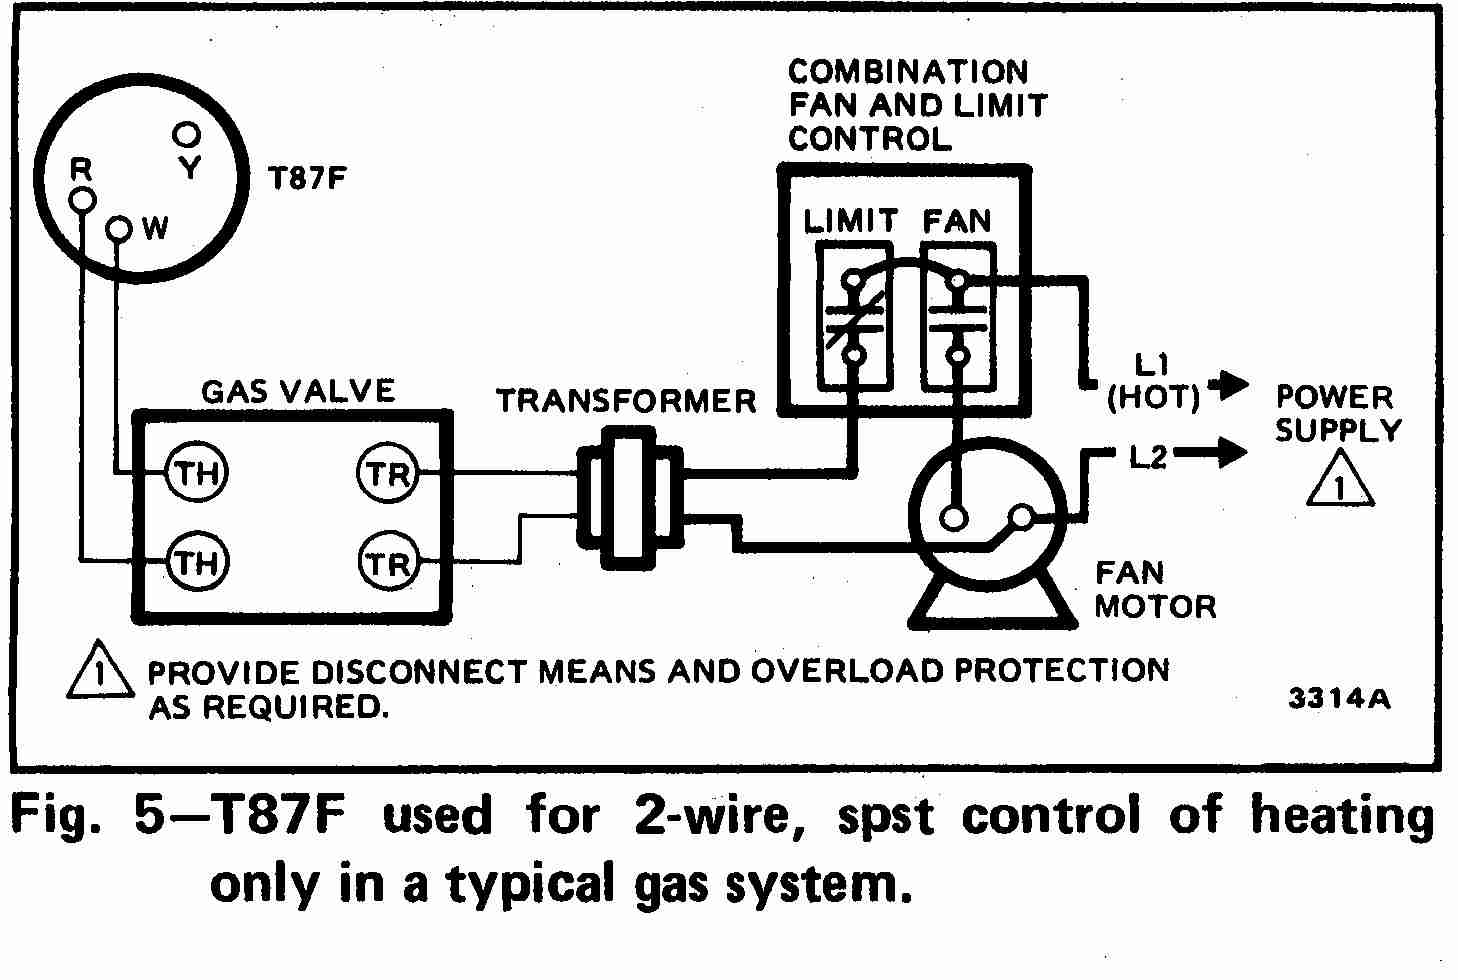 How Do I Connect A C Wire To An Utica Peg112cde Steam Boiler likewise Triton As2000xt Thermostatic Power Shower furthermore Hot Water Boiler Wiring Diagram furthermore Multistage Multizone Wiring Of Thermostats also How To Read Electrical Wiring Diagrams. on honeywell thermostat no c wire